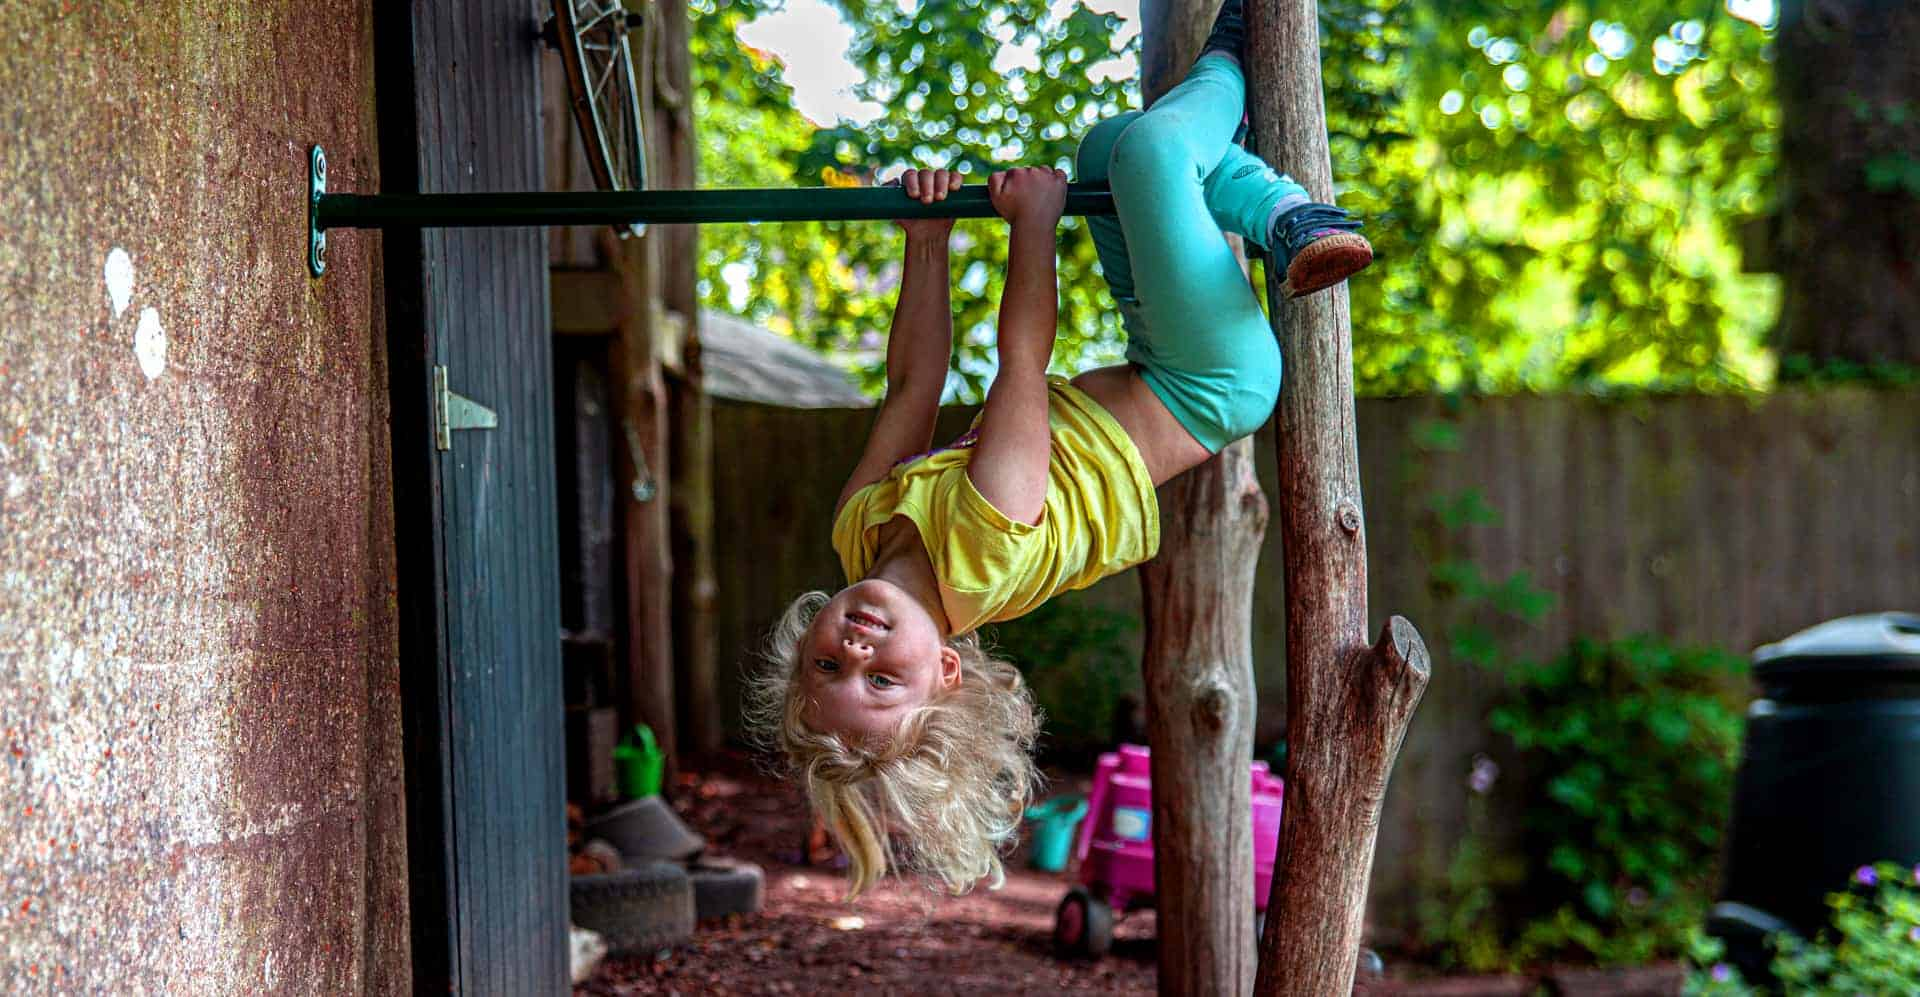 Hanging upside down outside on a climbing bar